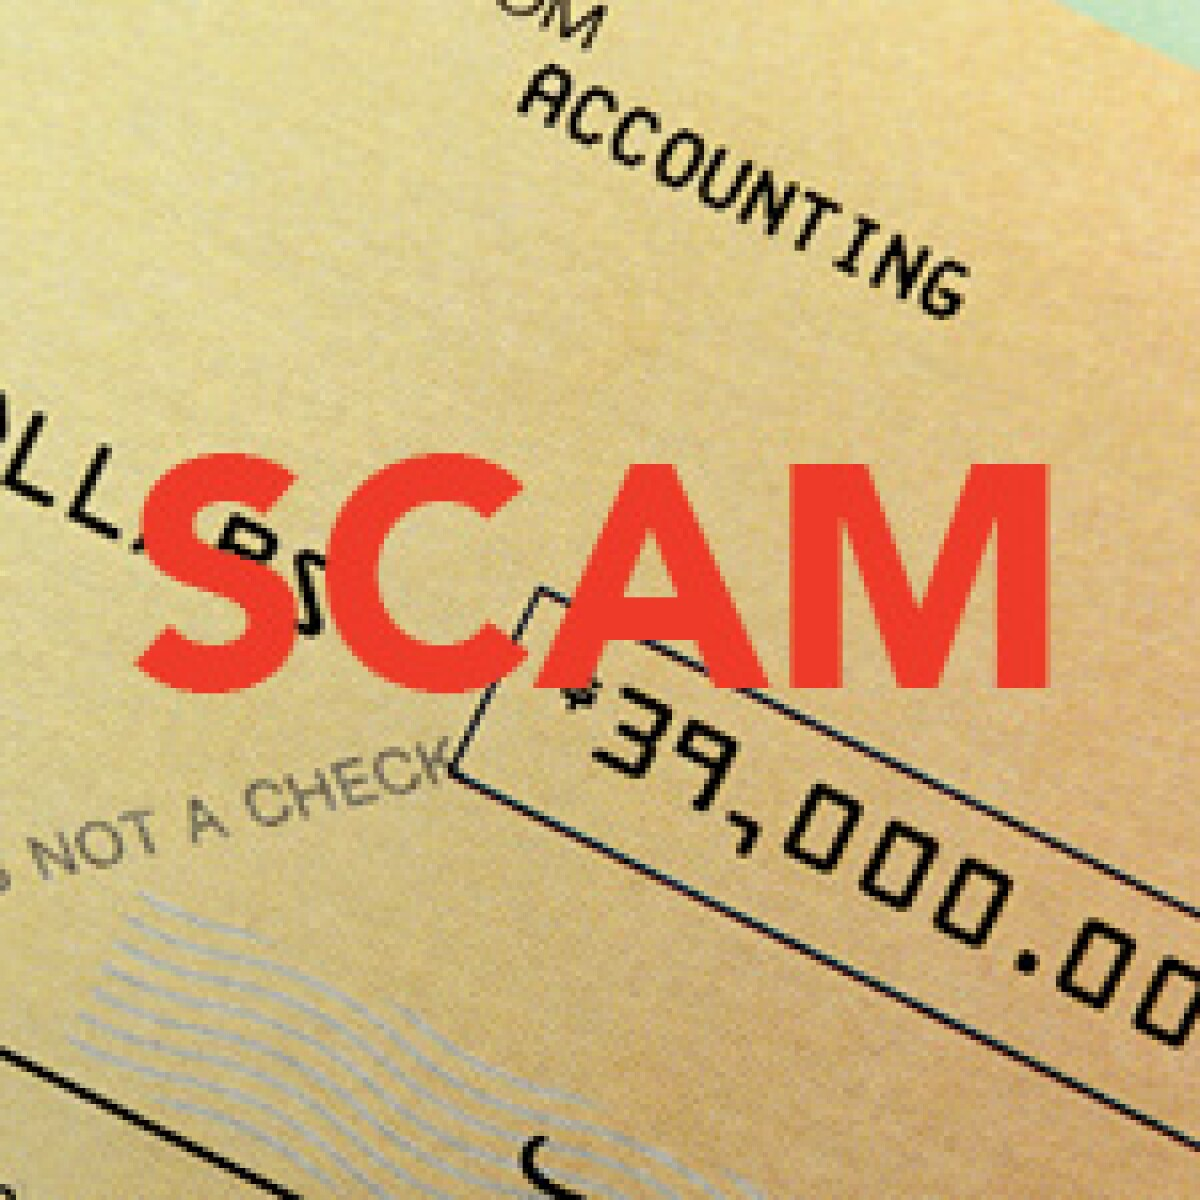 6/27 Scam Alert: Watch Out for Fake Publisher's Clearing House Agents